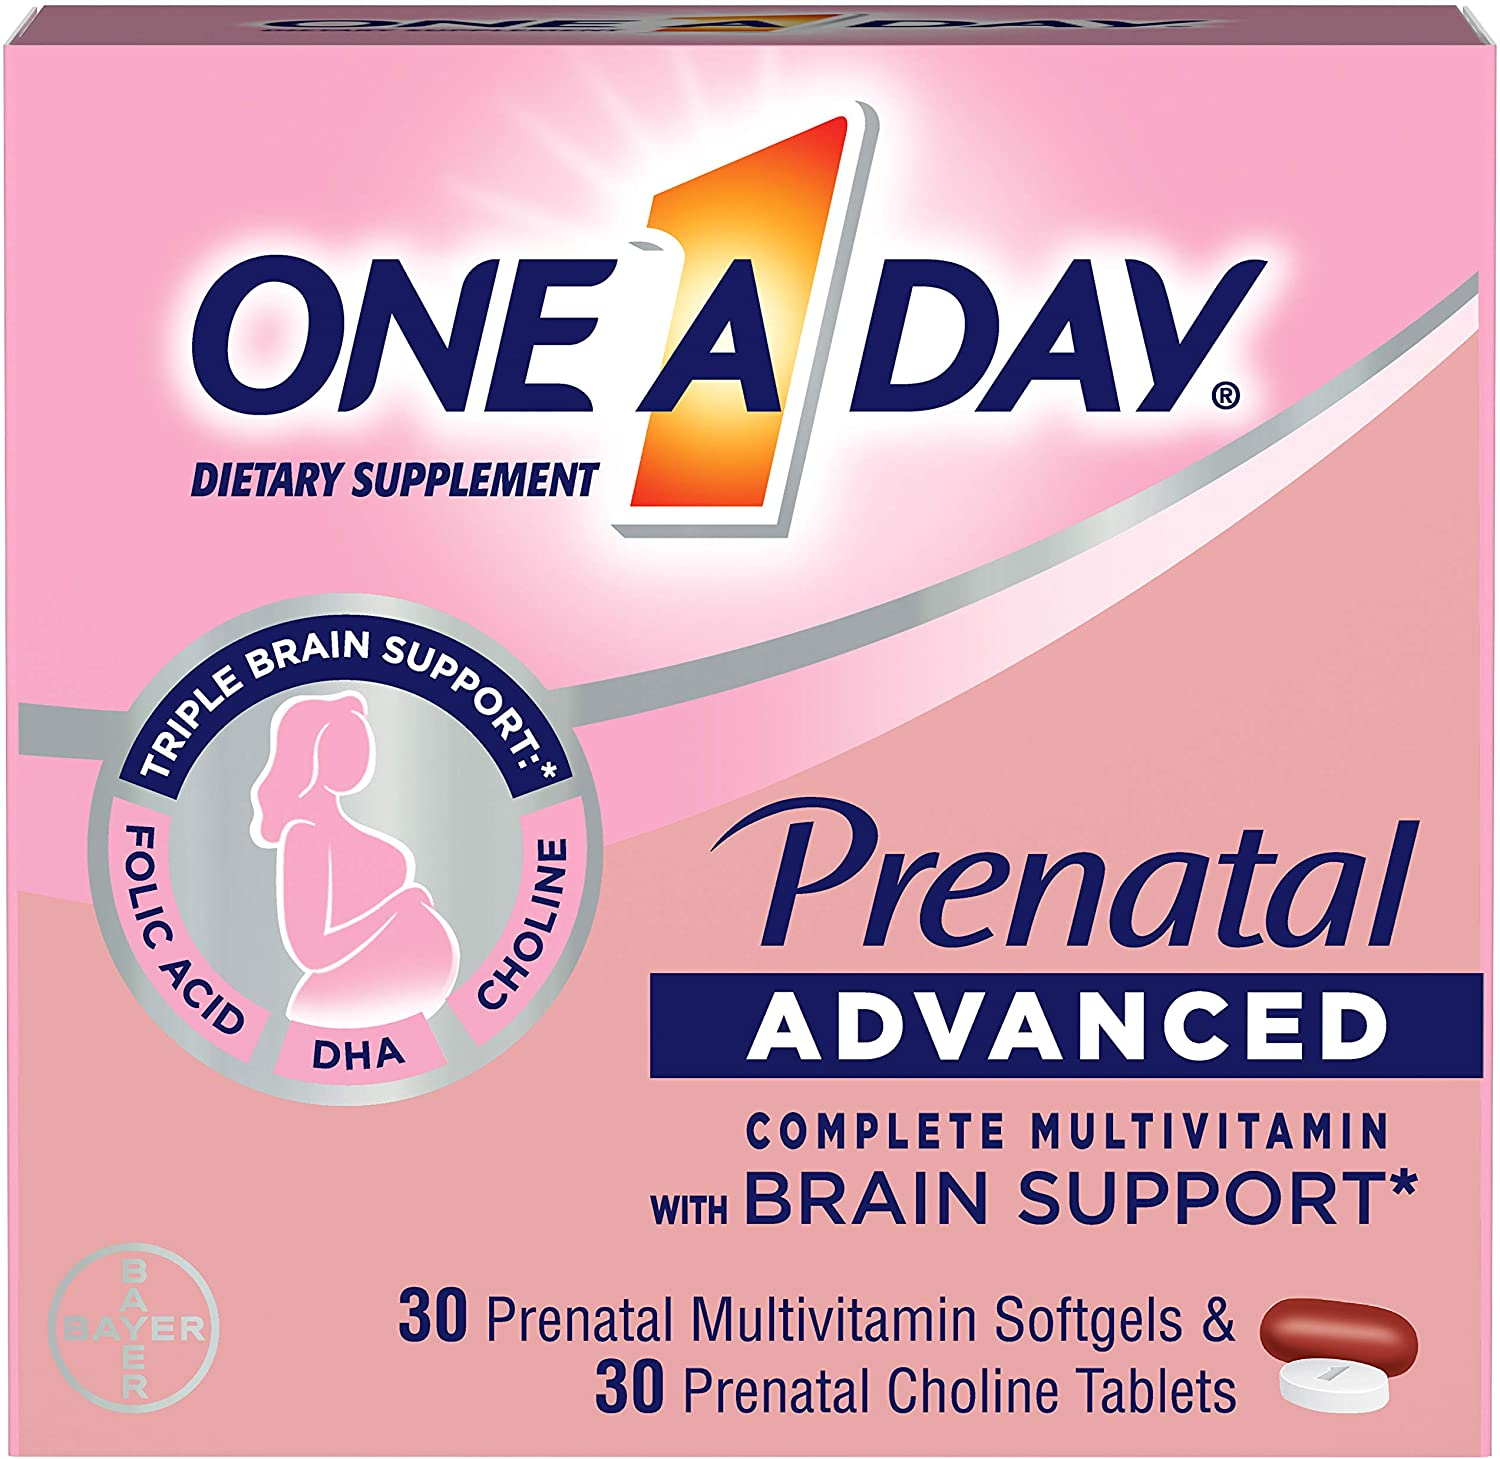 One A Day Women's Prenatal Advanced Complete Multivitamin with Brain Support* with Choline, Folic Acid, Omega-3 DHA & Iron for Pre, During and Post Pregnancy, 30+30 Count